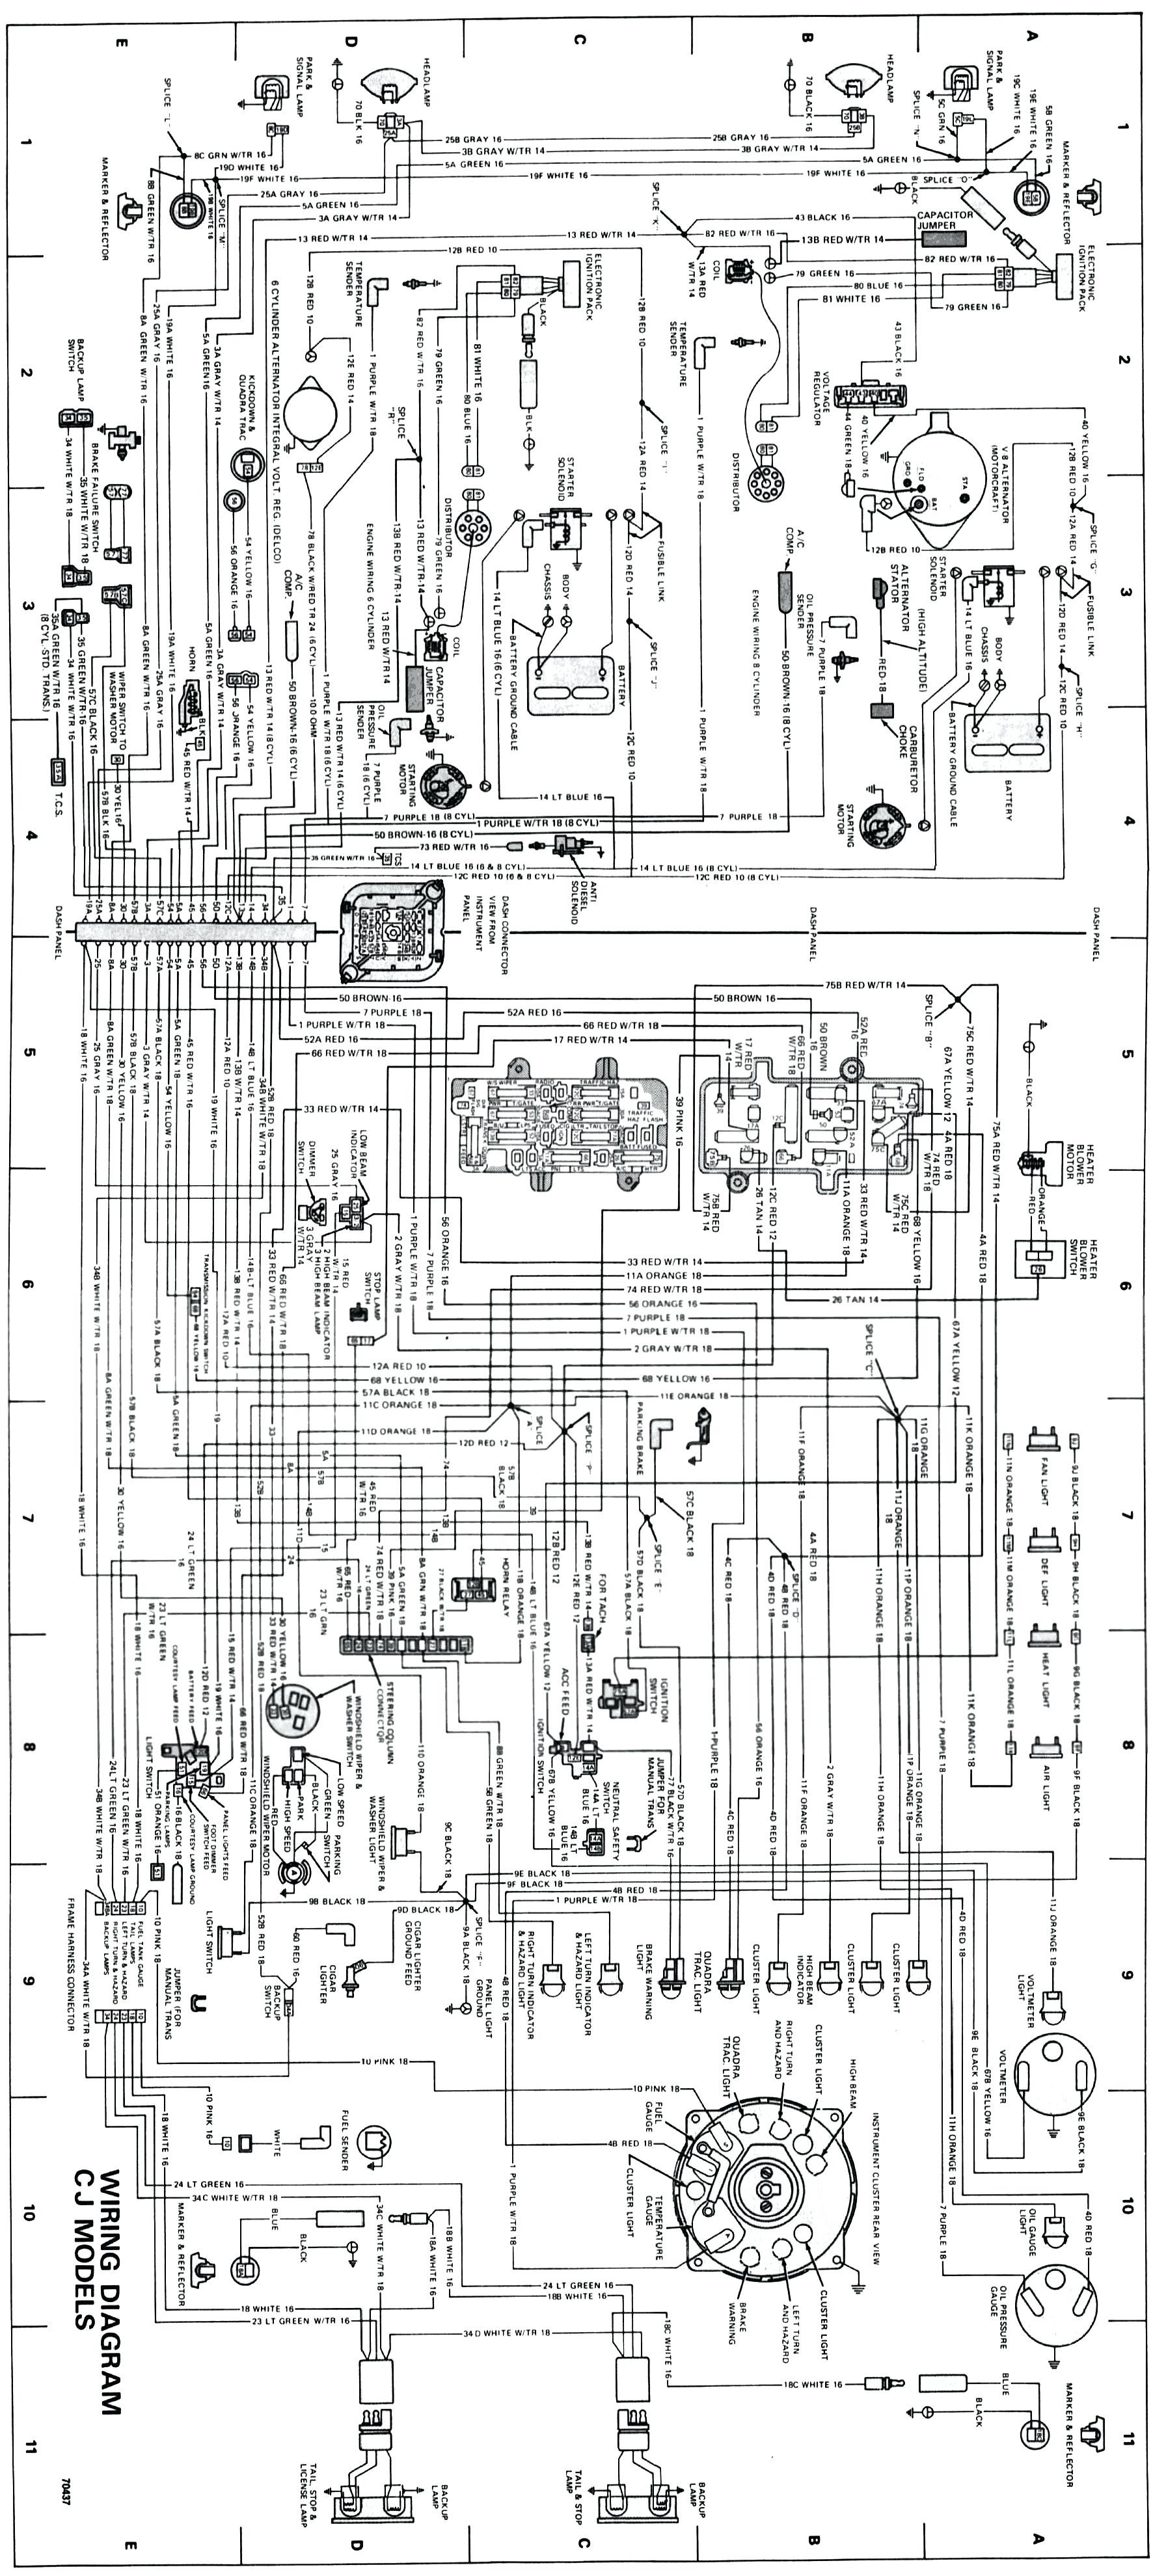 Jeep Cj7 Fuse Diagram Archive Of Automotive Wiring 82 Corvette Box 1982 Harness Schematics Rh Caltech Ctp Com 1979 Cj Panel